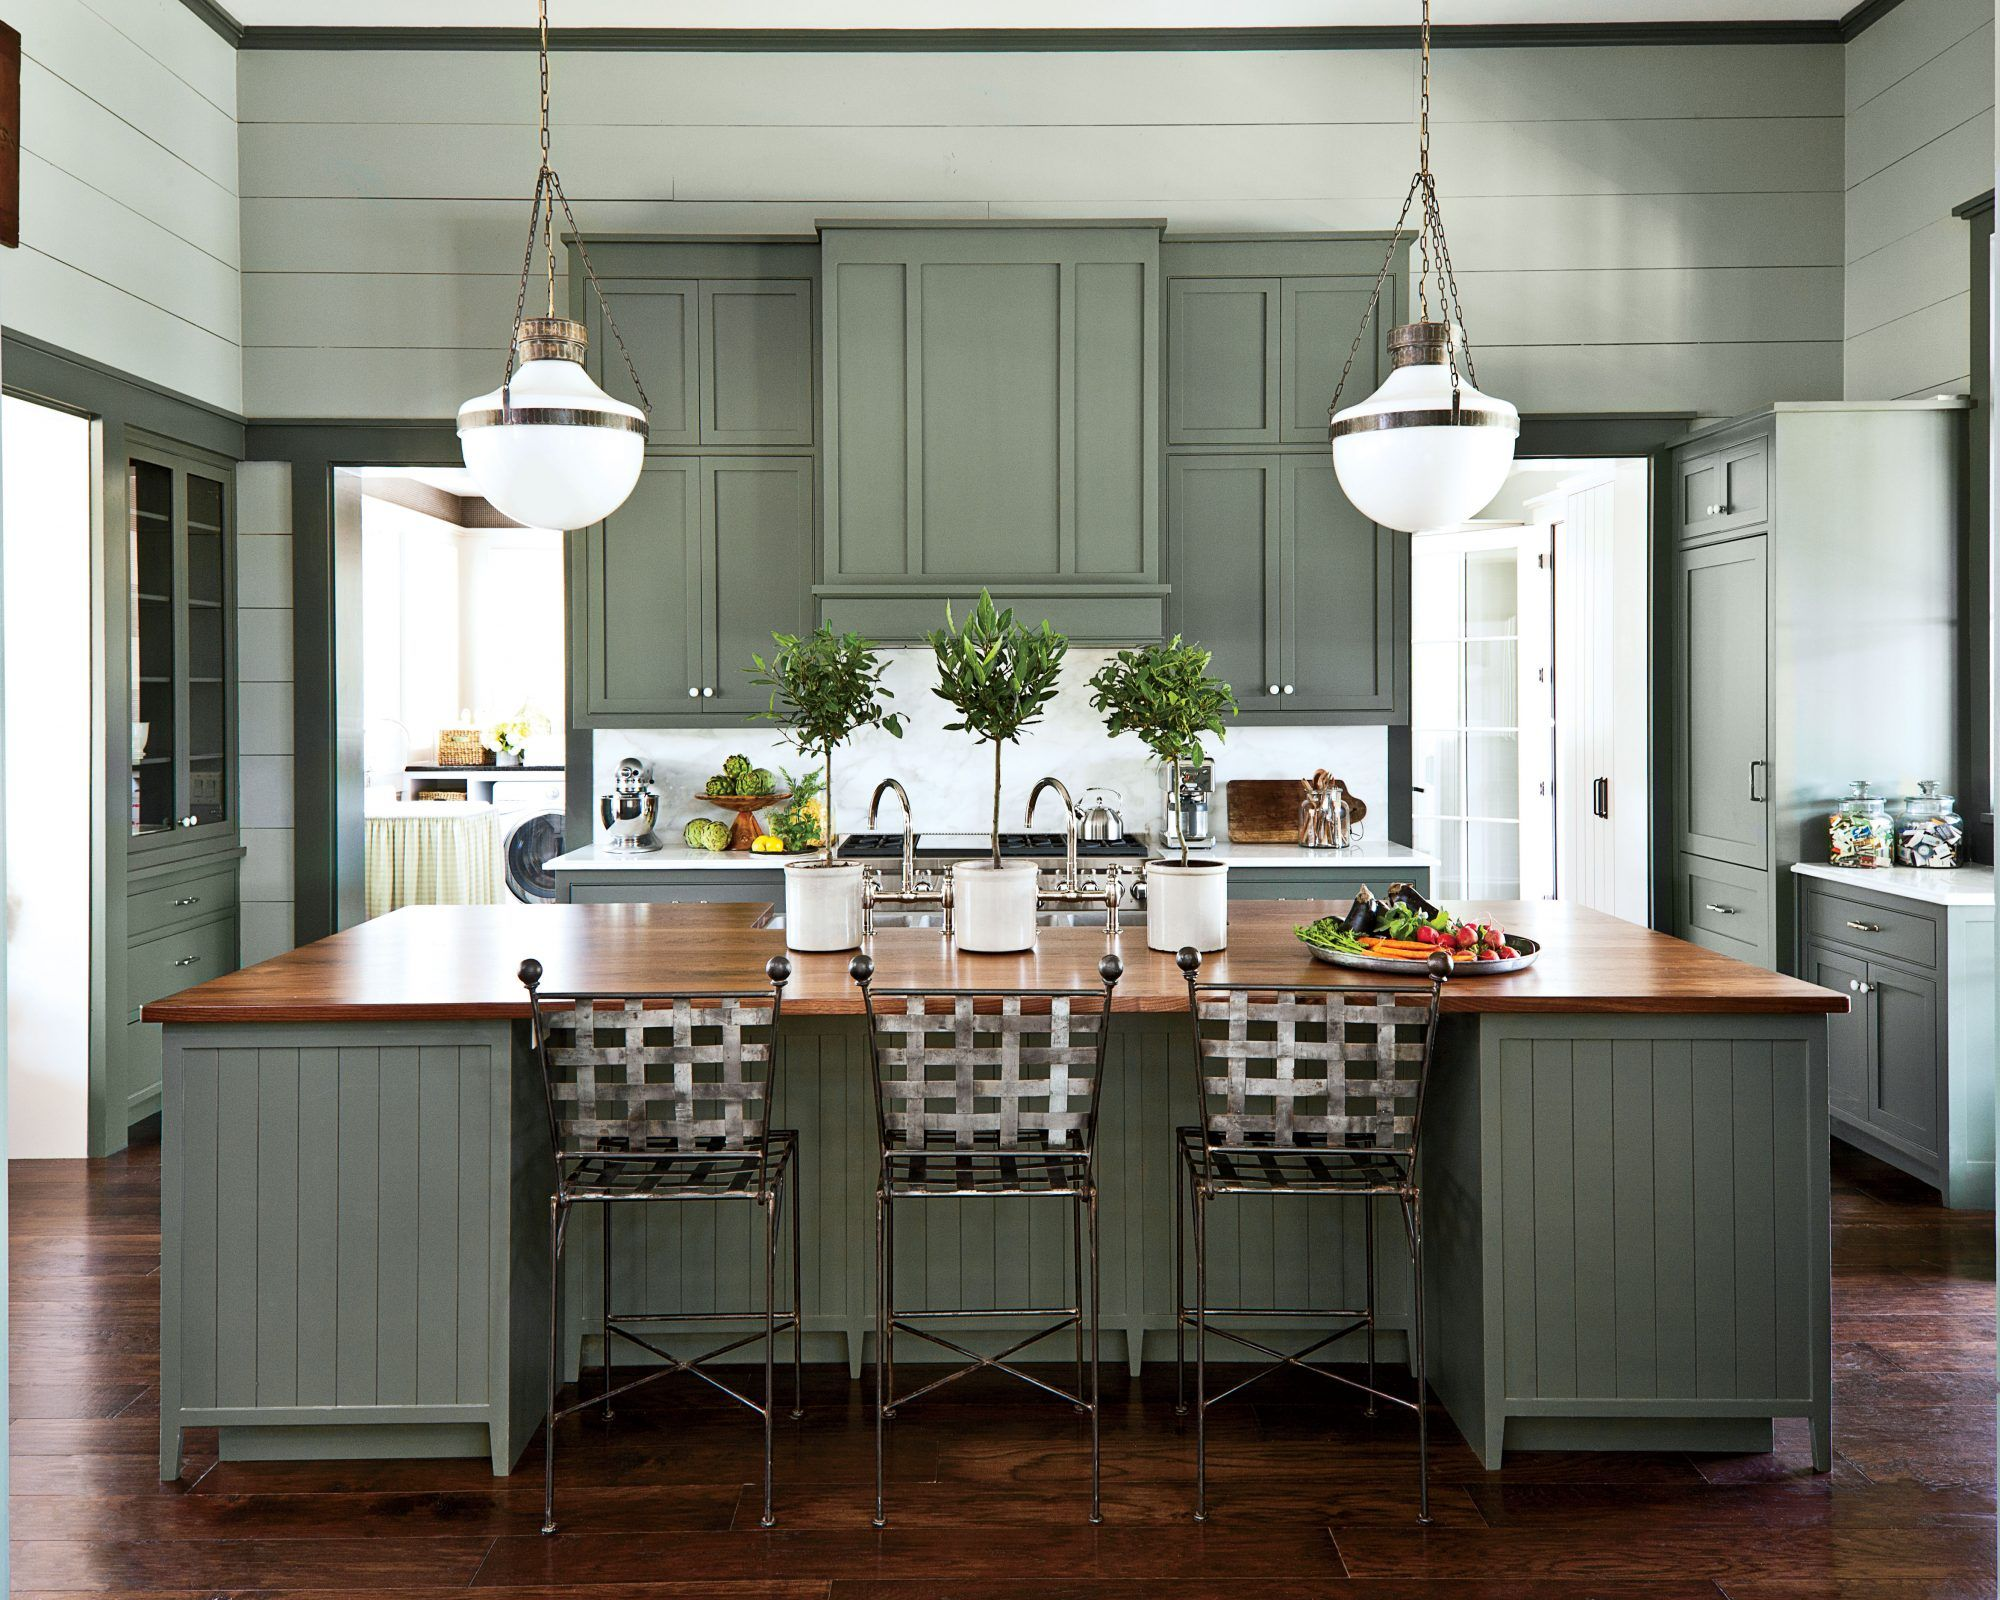 7 Paint Colors We're Loving for Kitchen in 2020